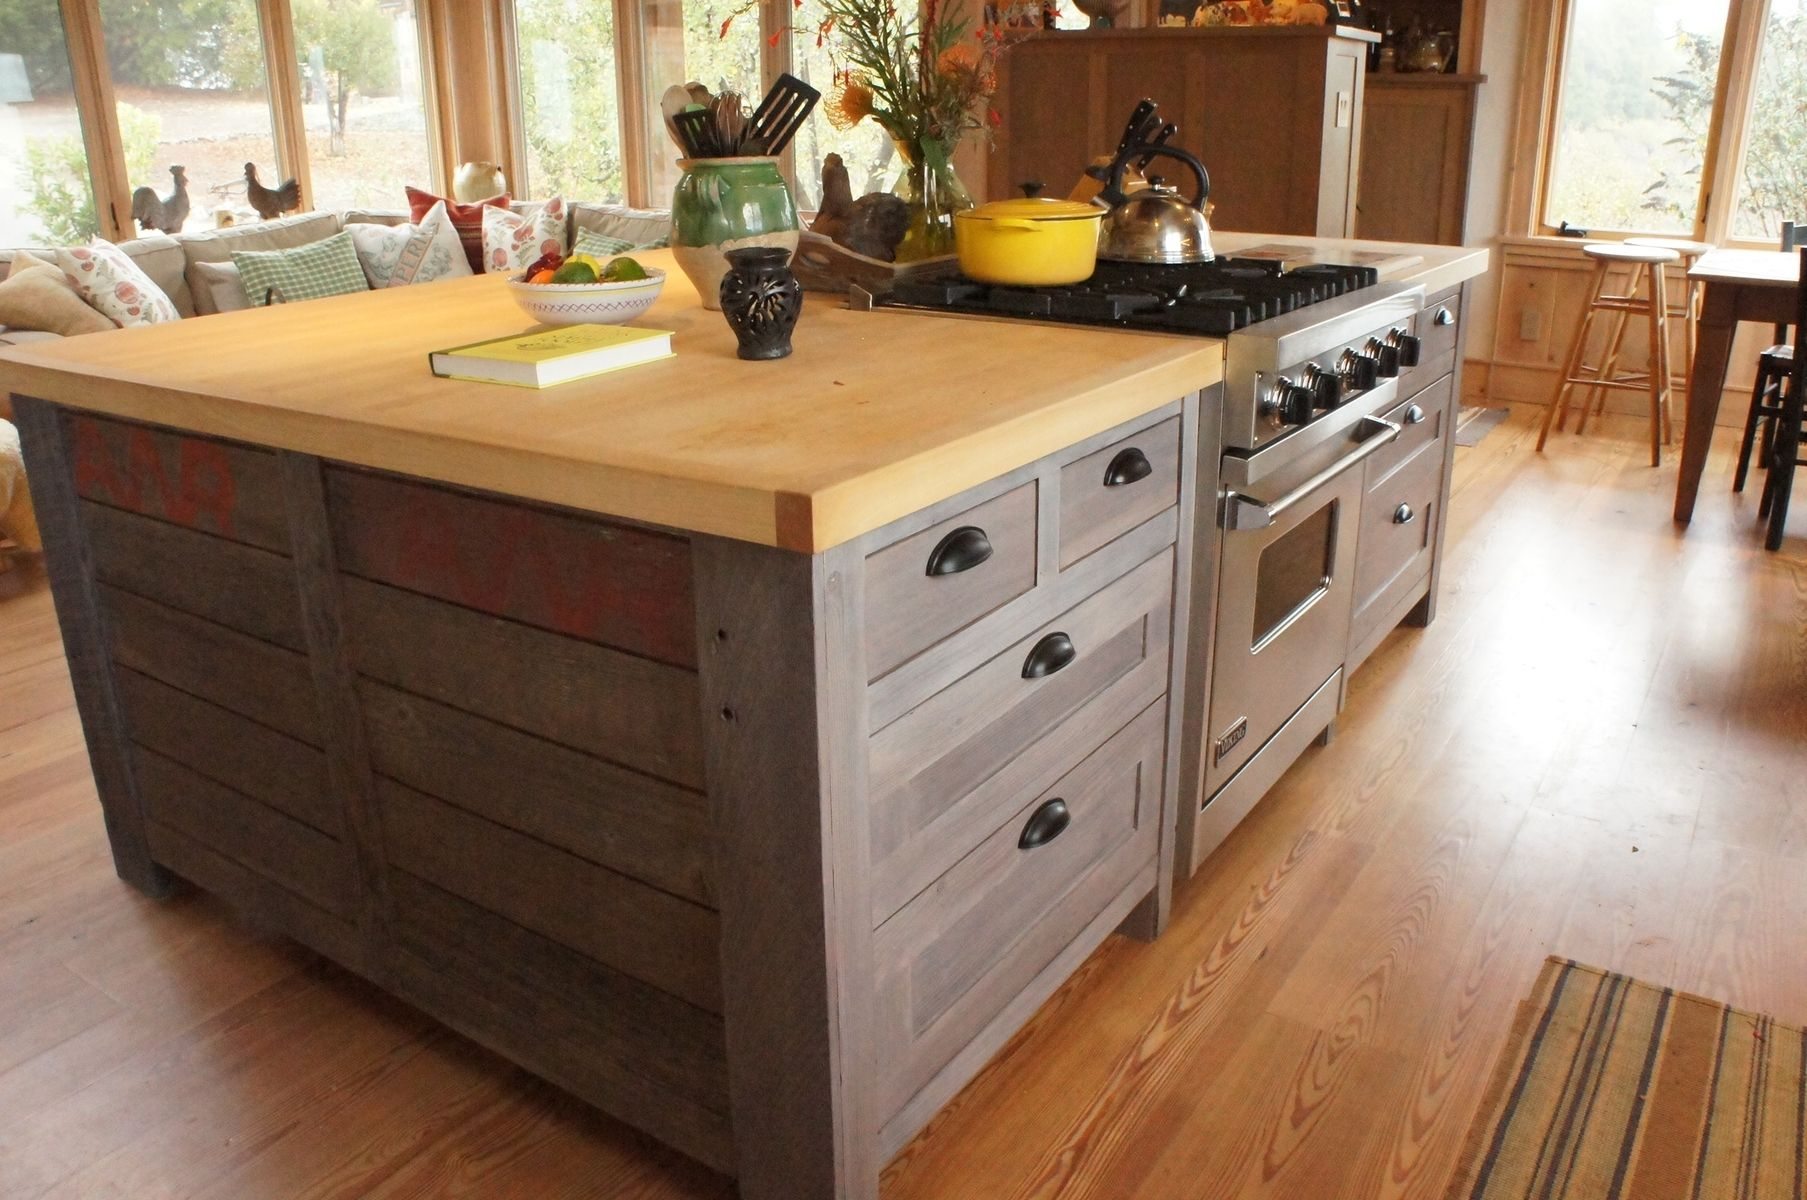 Kitchen Island Rustic hand crafted rustic kitchen islandatlas stringed instruments